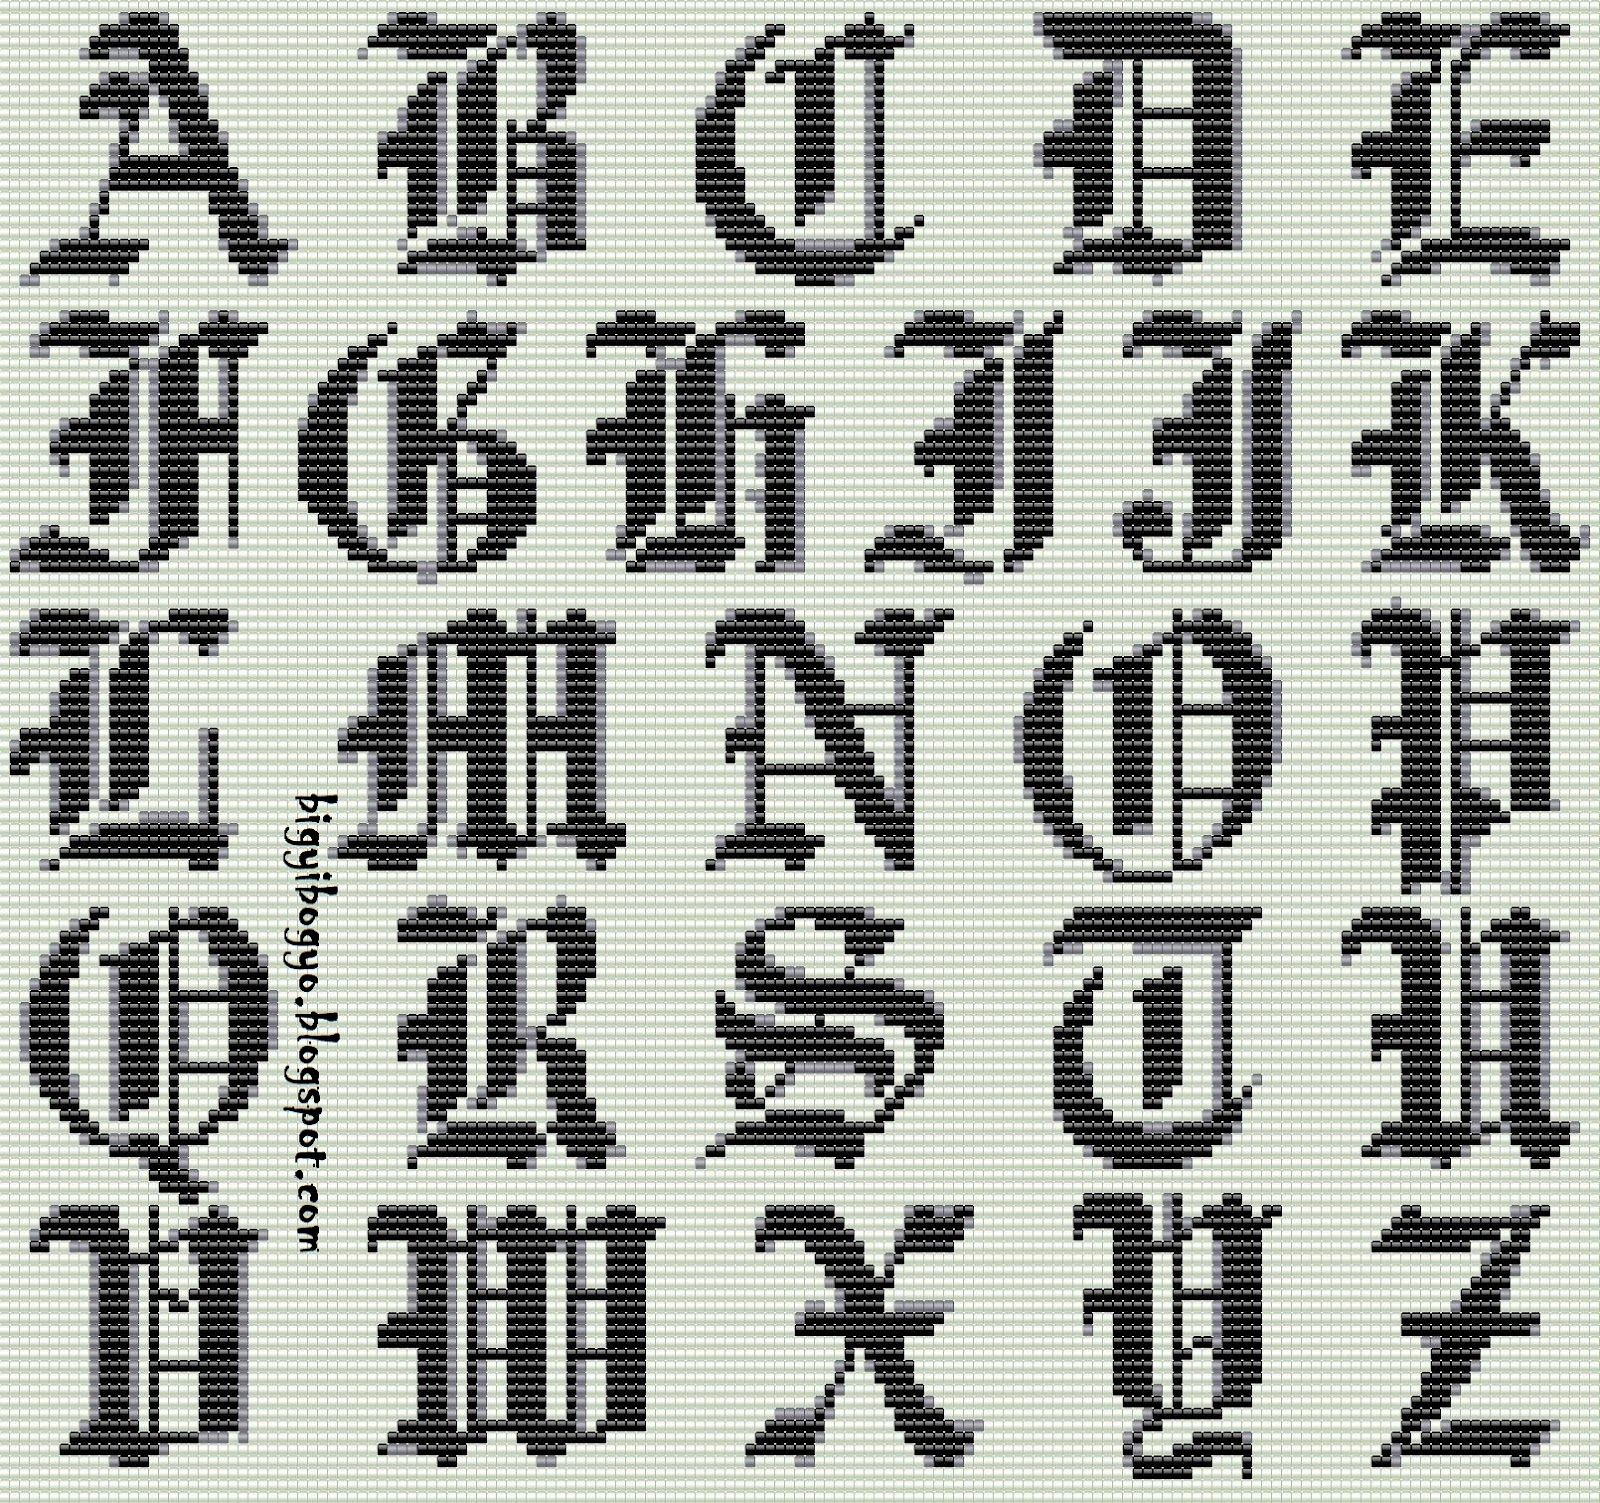 Pin By Rogene Moeckl On Alphabet